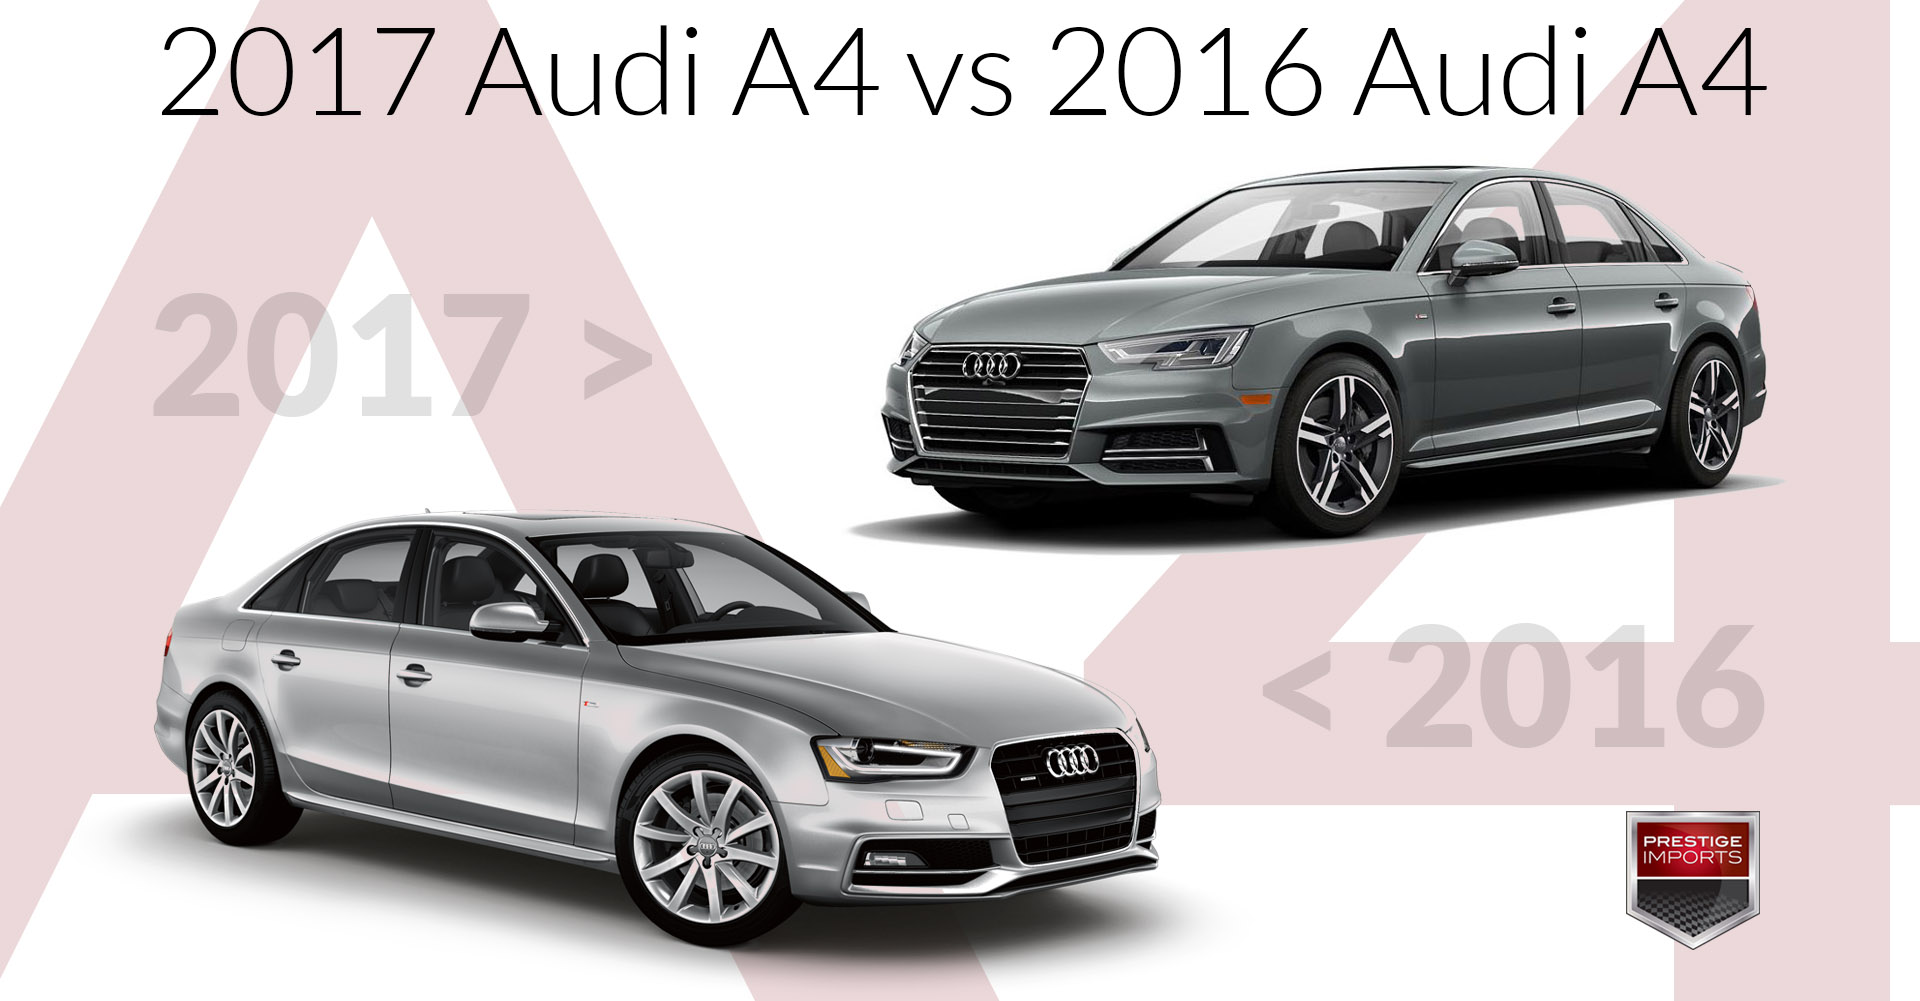 2017 audi a4 vs 2016 audi a4 an insider 39 s perspective. Black Bedroom Furniture Sets. Home Design Ideas